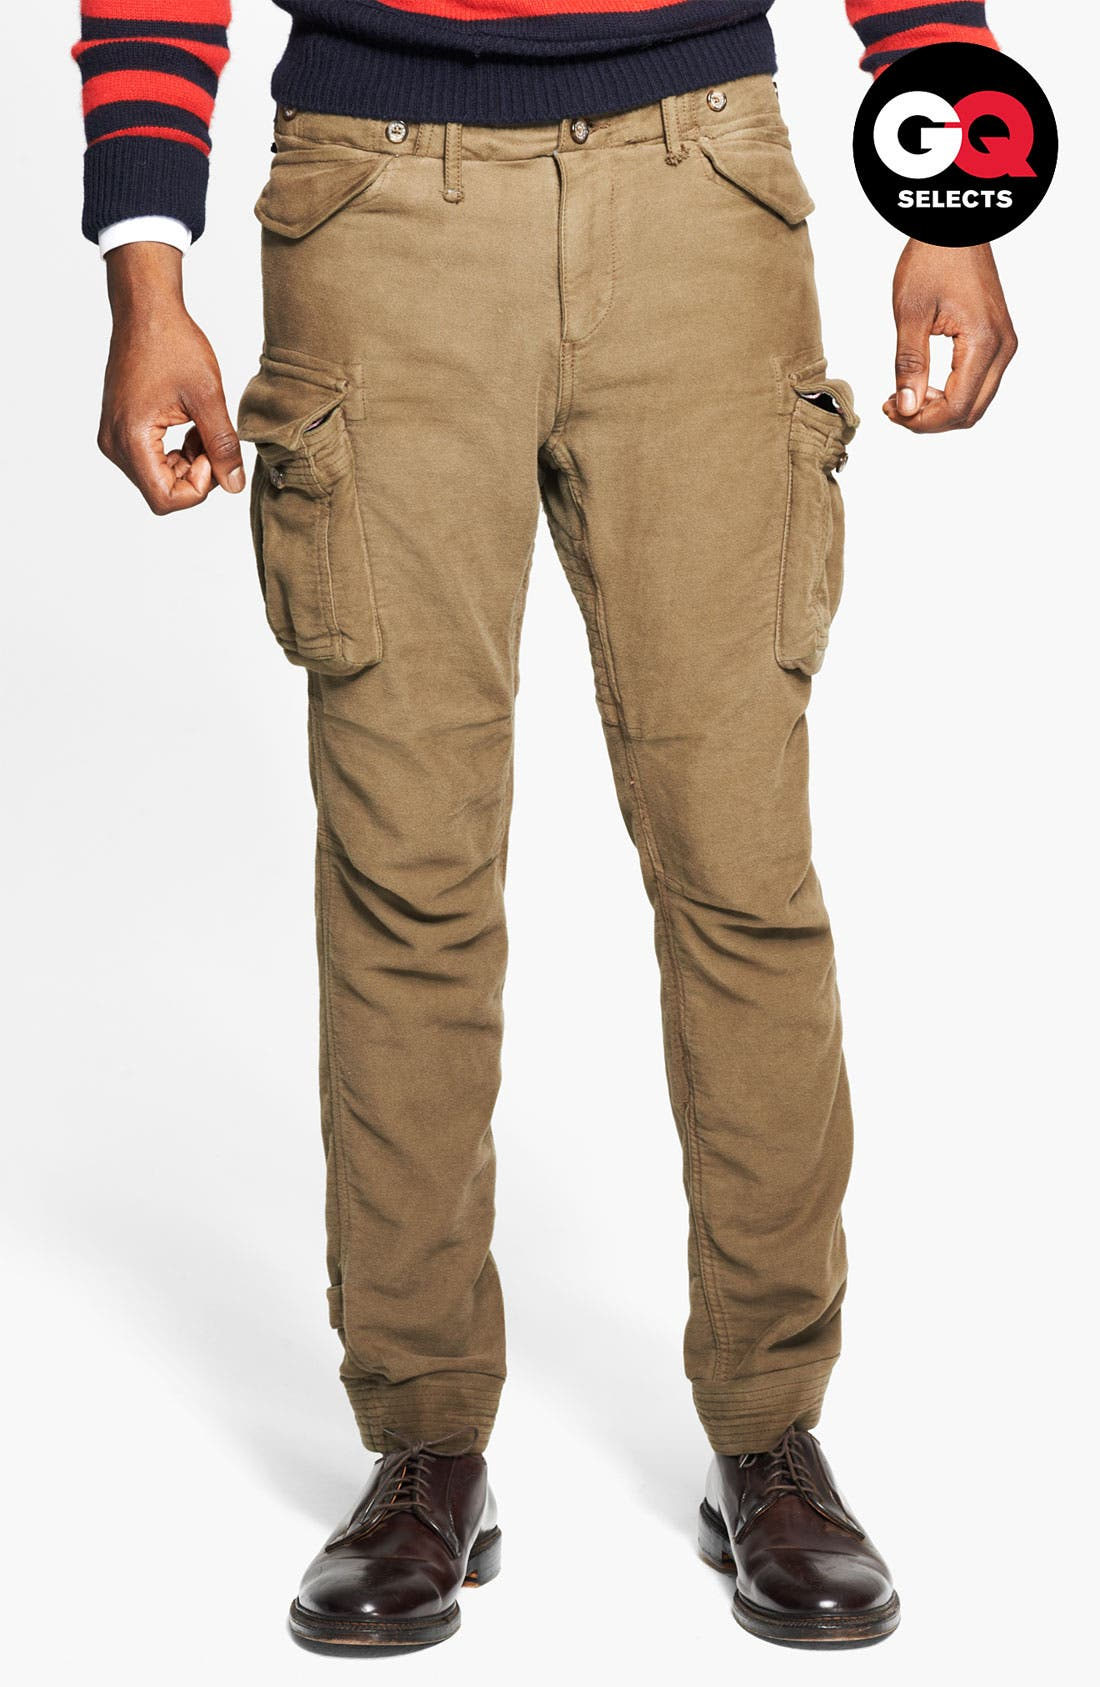 Alternate Image 1 Selected - Gant by Michael Bastian Skinny Moleskin Cotton Cargo Pants